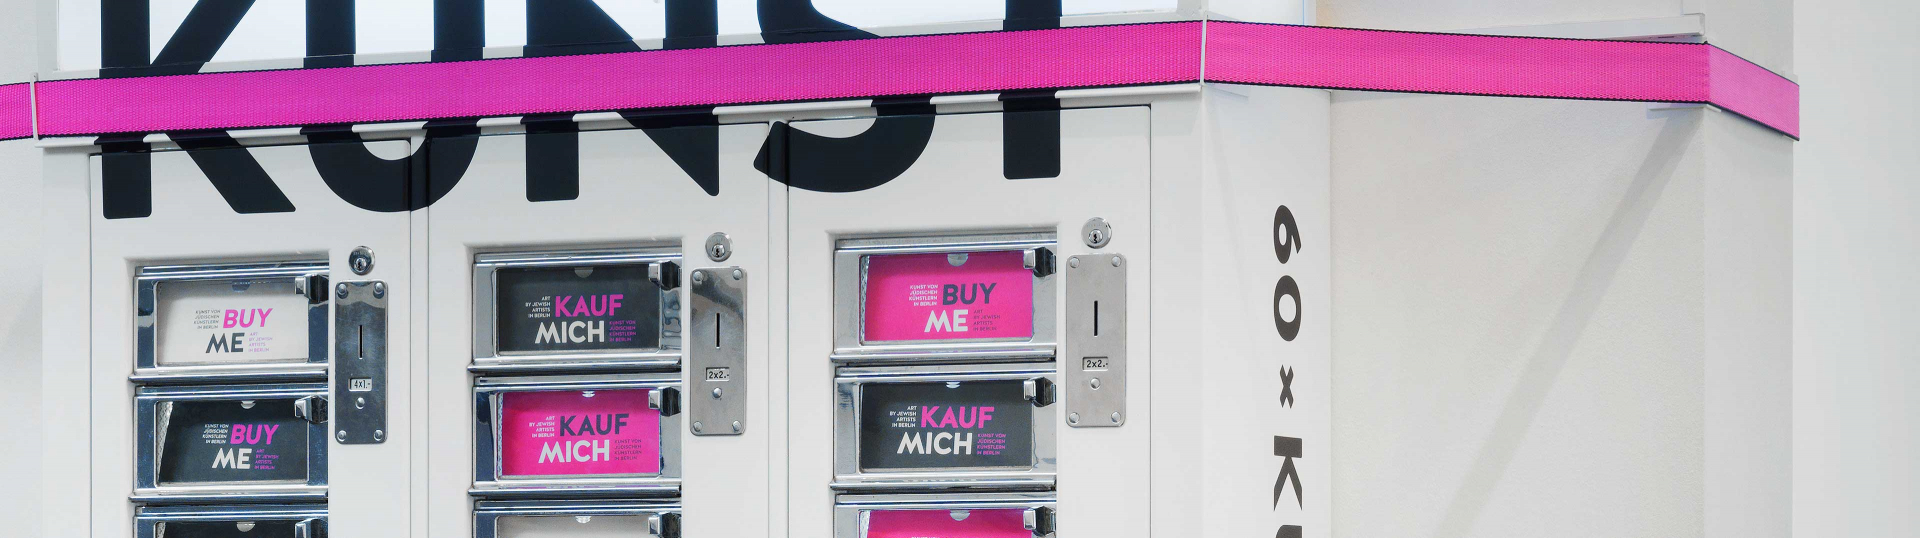 View of a small part of the Jewish Museum Berlin's art vending machine